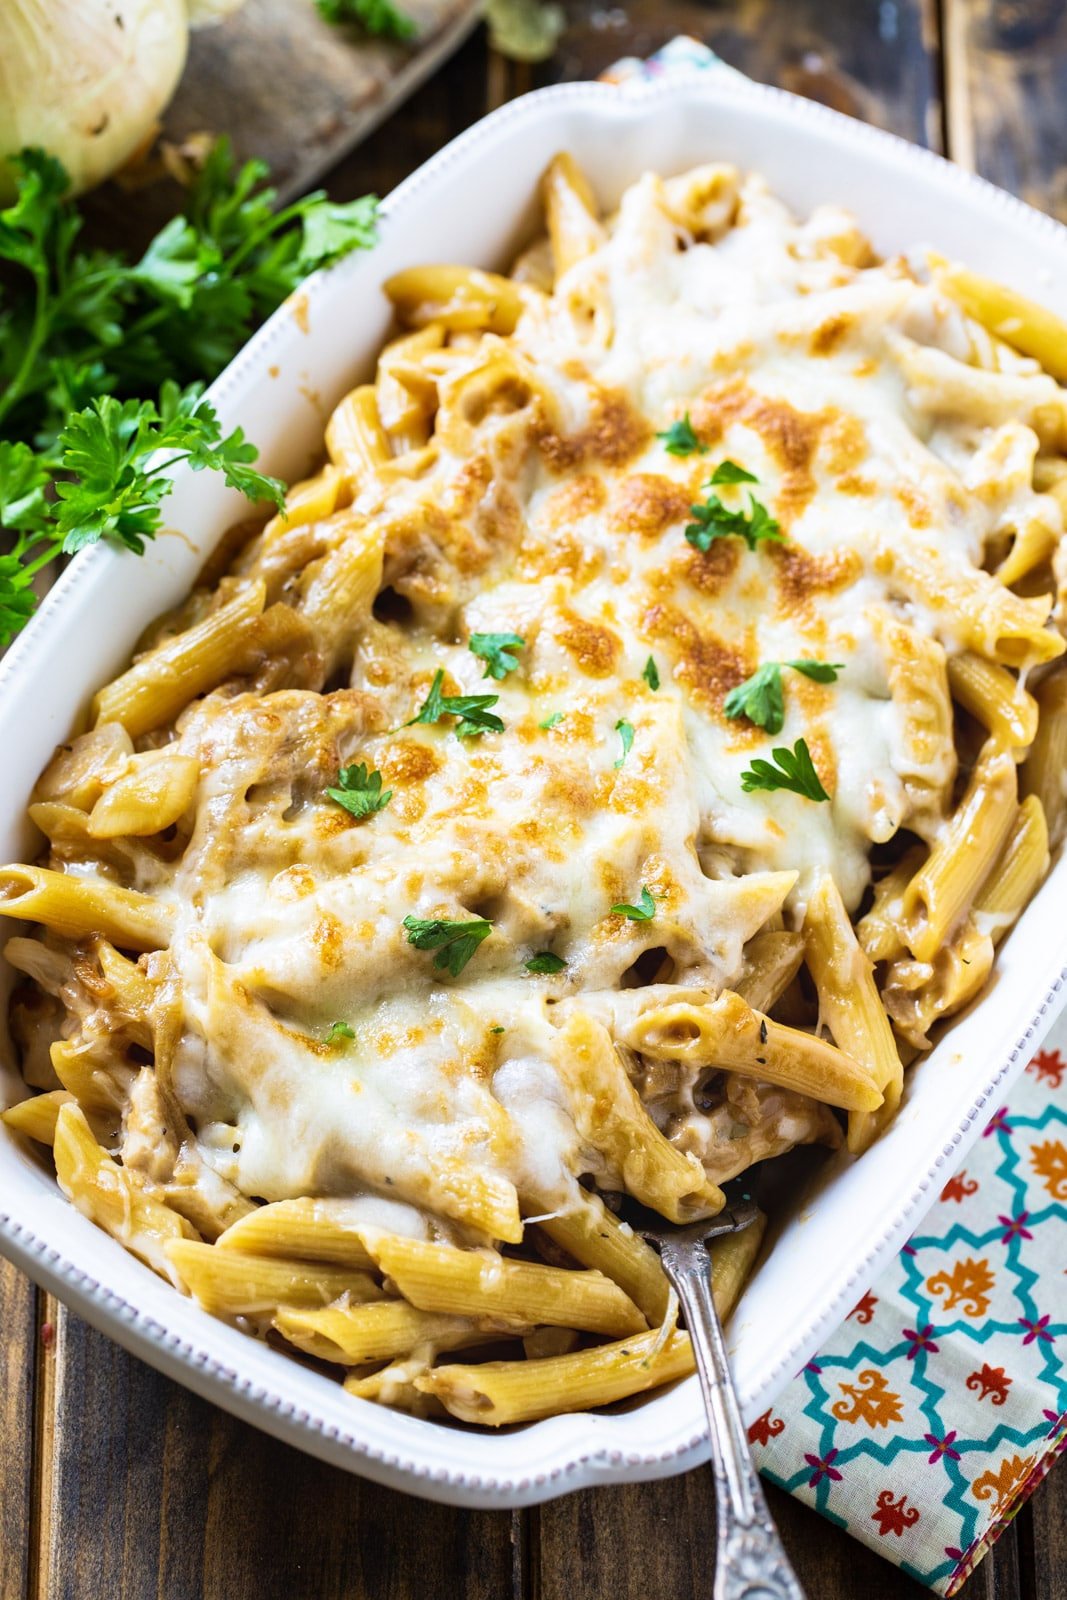 French Onion Pasta in a white baking dish.